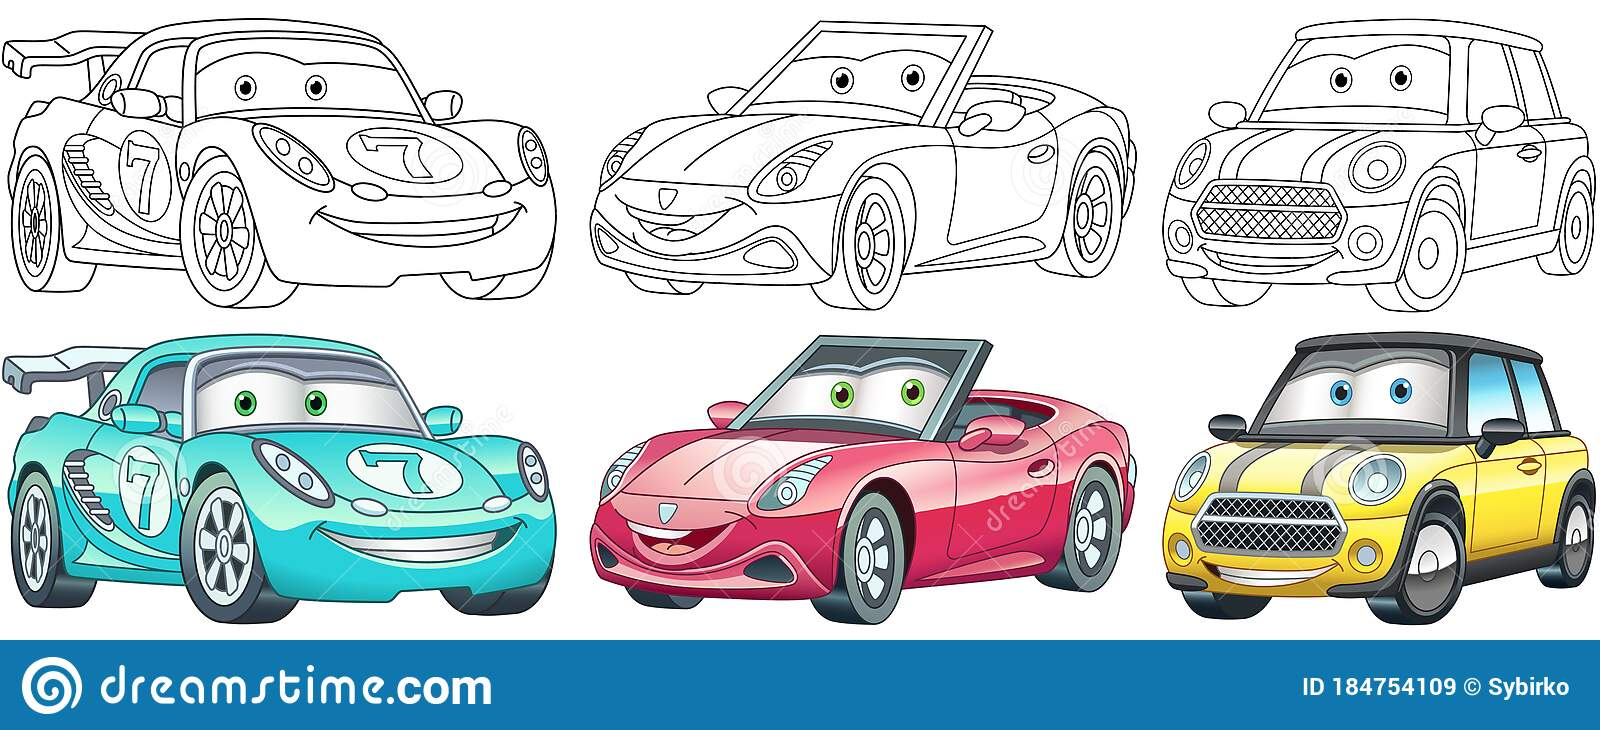 Cartoon Cars Coloring Pages Set Stock Vector Illustration Of Book Icon 184754109